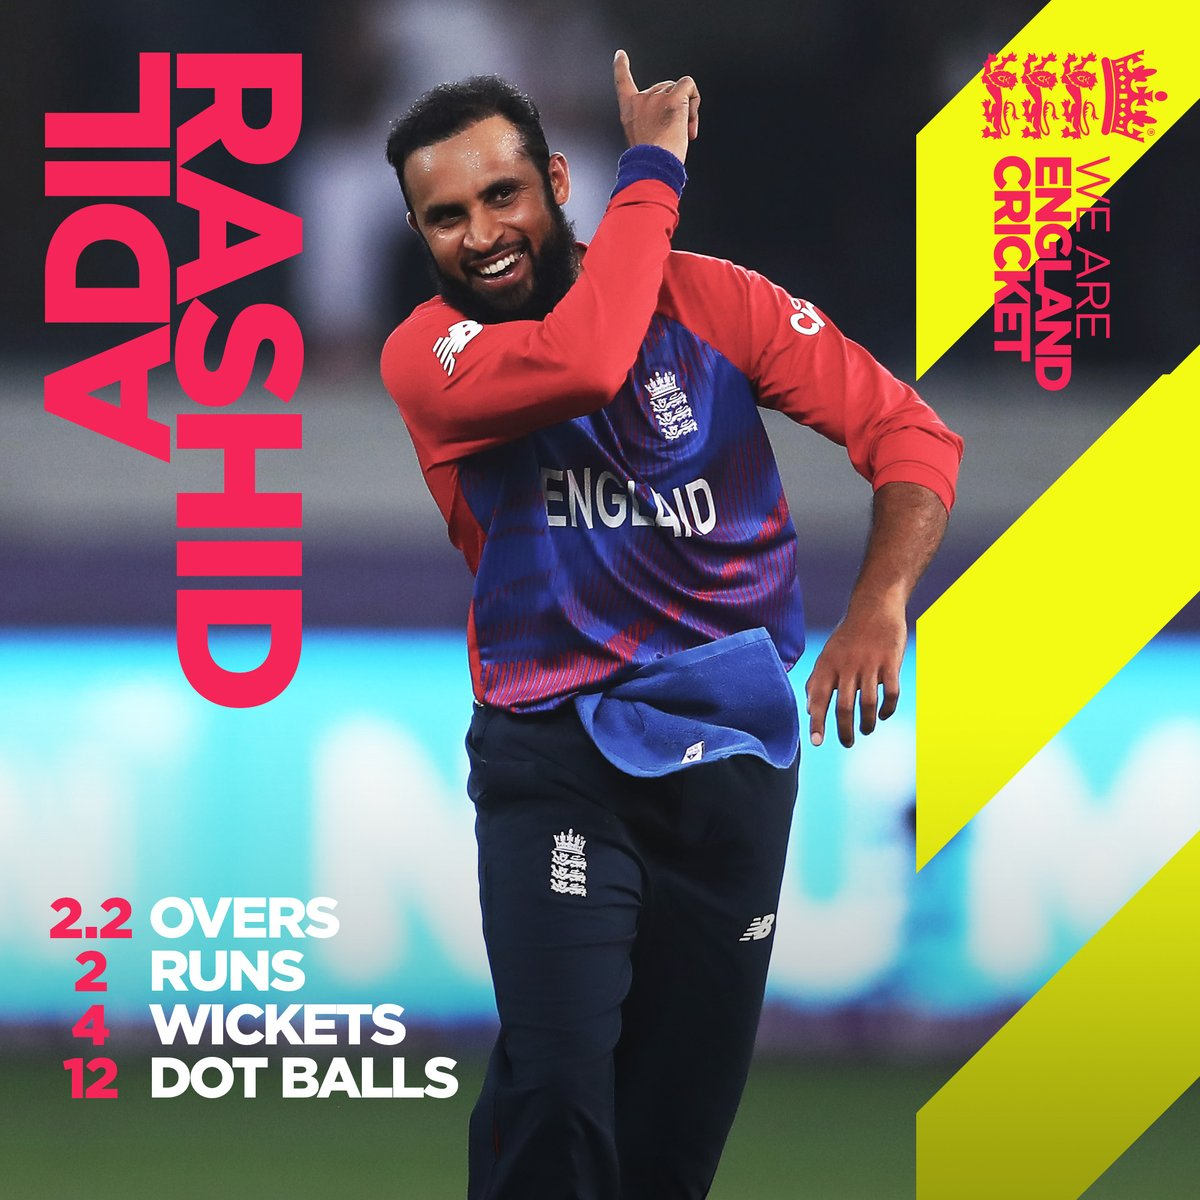 Our magician! 🎩  Describe Rash's performance from last night in just one word...  Highlights: https://t.co/0jkjpc1UhH  #T20WorldCup   #EnglandCricket https://t.co/jzkBQPpttb